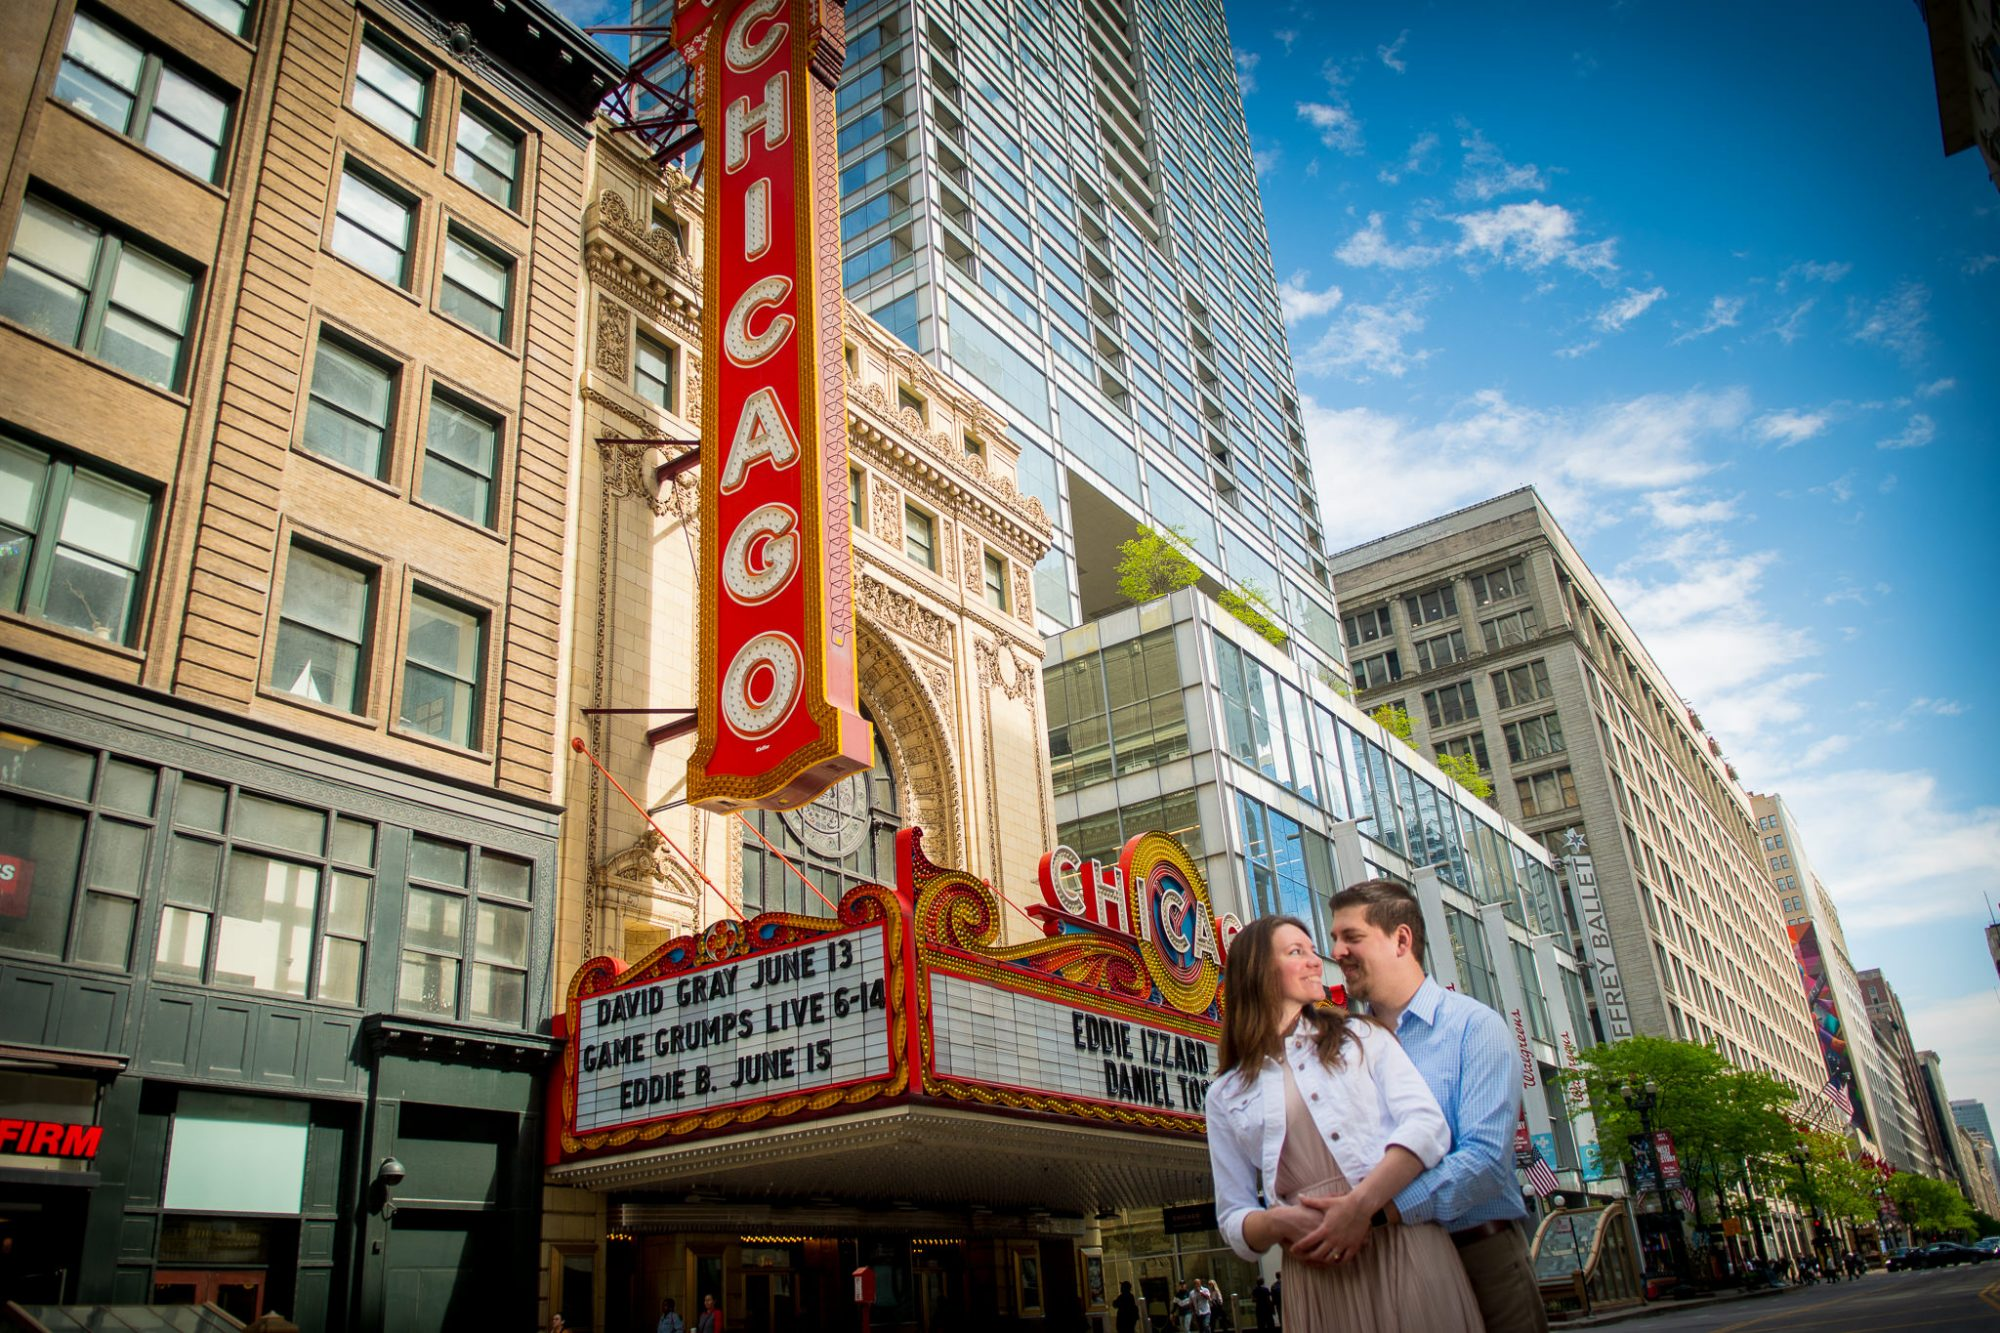 Engaged couple close together at the at the Chicago Theatre on State street